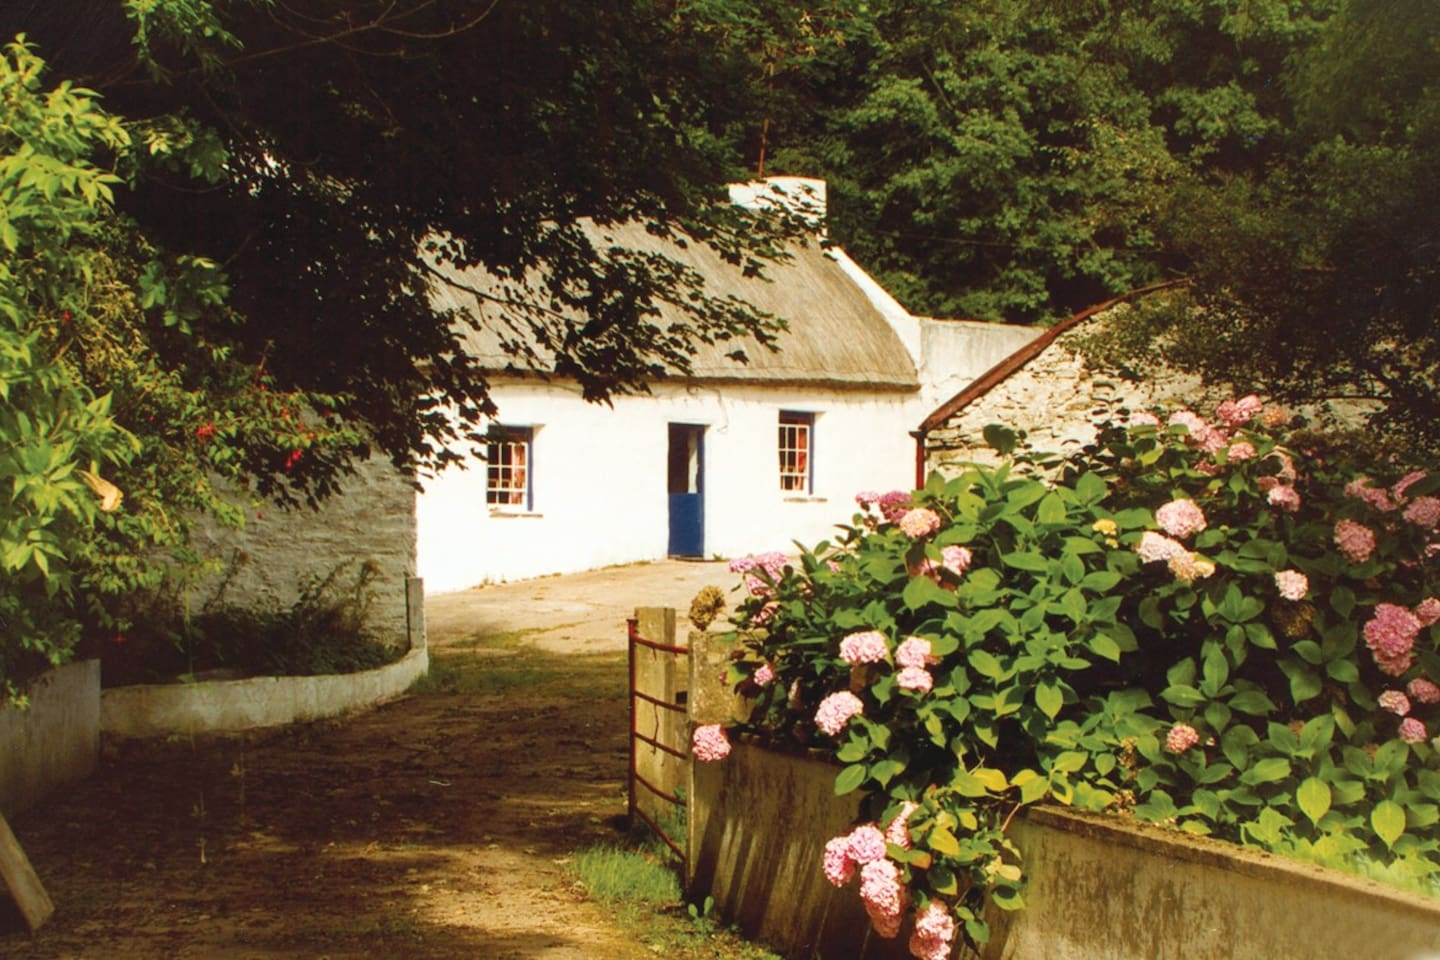 Graham's Irish Thatched Cottage